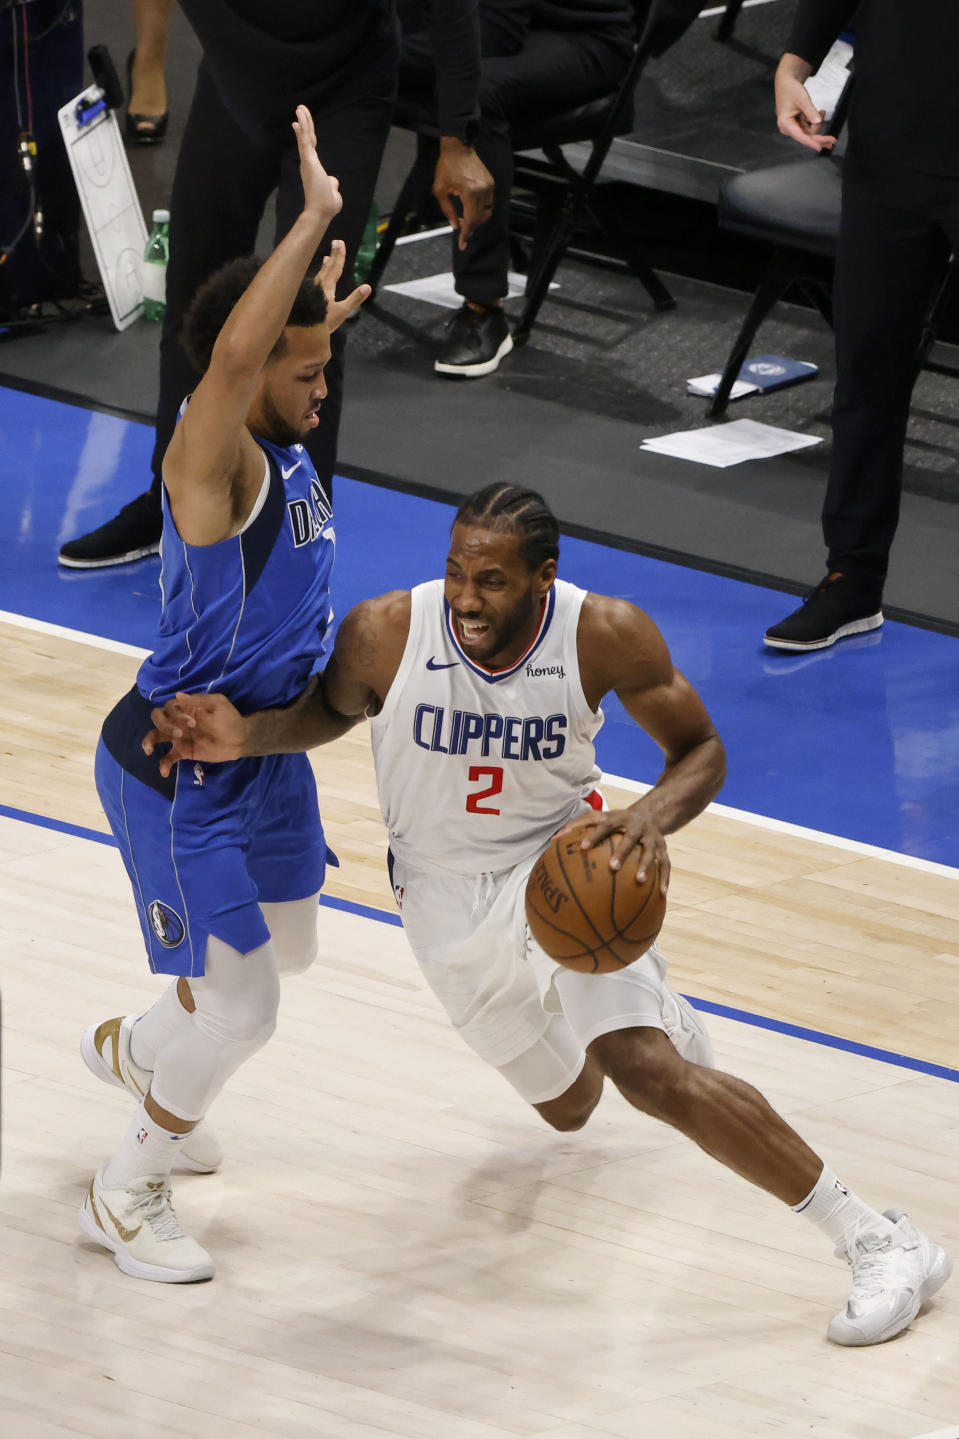 Los Angeles Clippers forward Kawhi Leonard (2) drives past Dallas Mavericks guard Jalen Brunson, left, in the second half during Game 6 of an NBA basketball first-round playoff series in Dallas, Friday, June 4, 2021. (AP Photo/Michael Ainsworth)